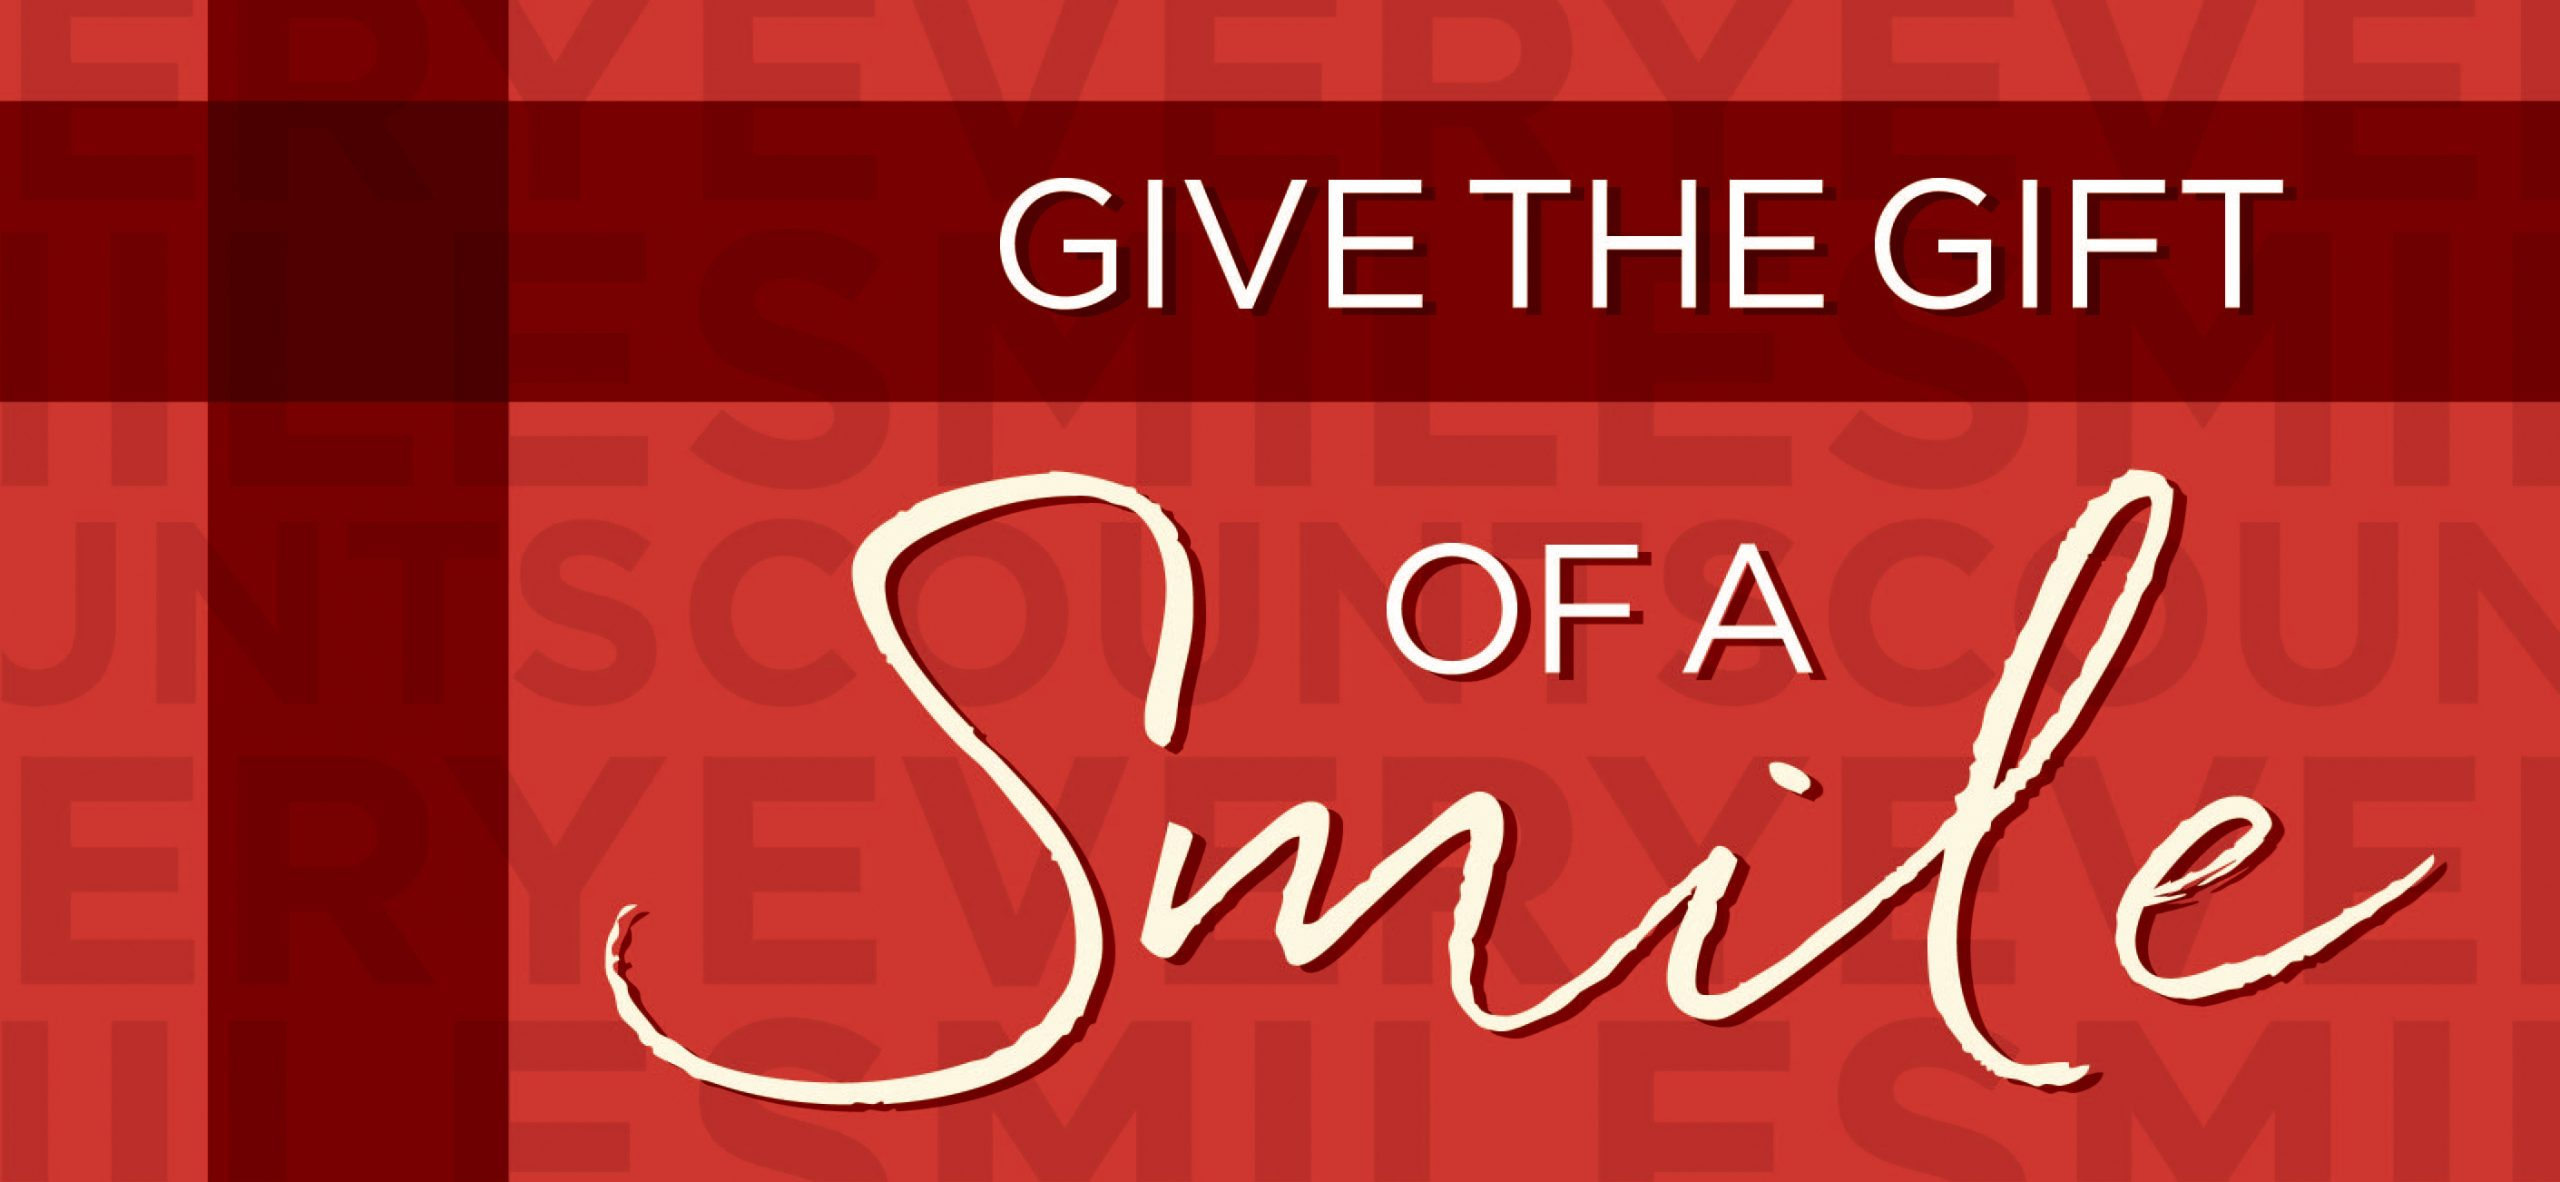 Give the Gift of a Smile